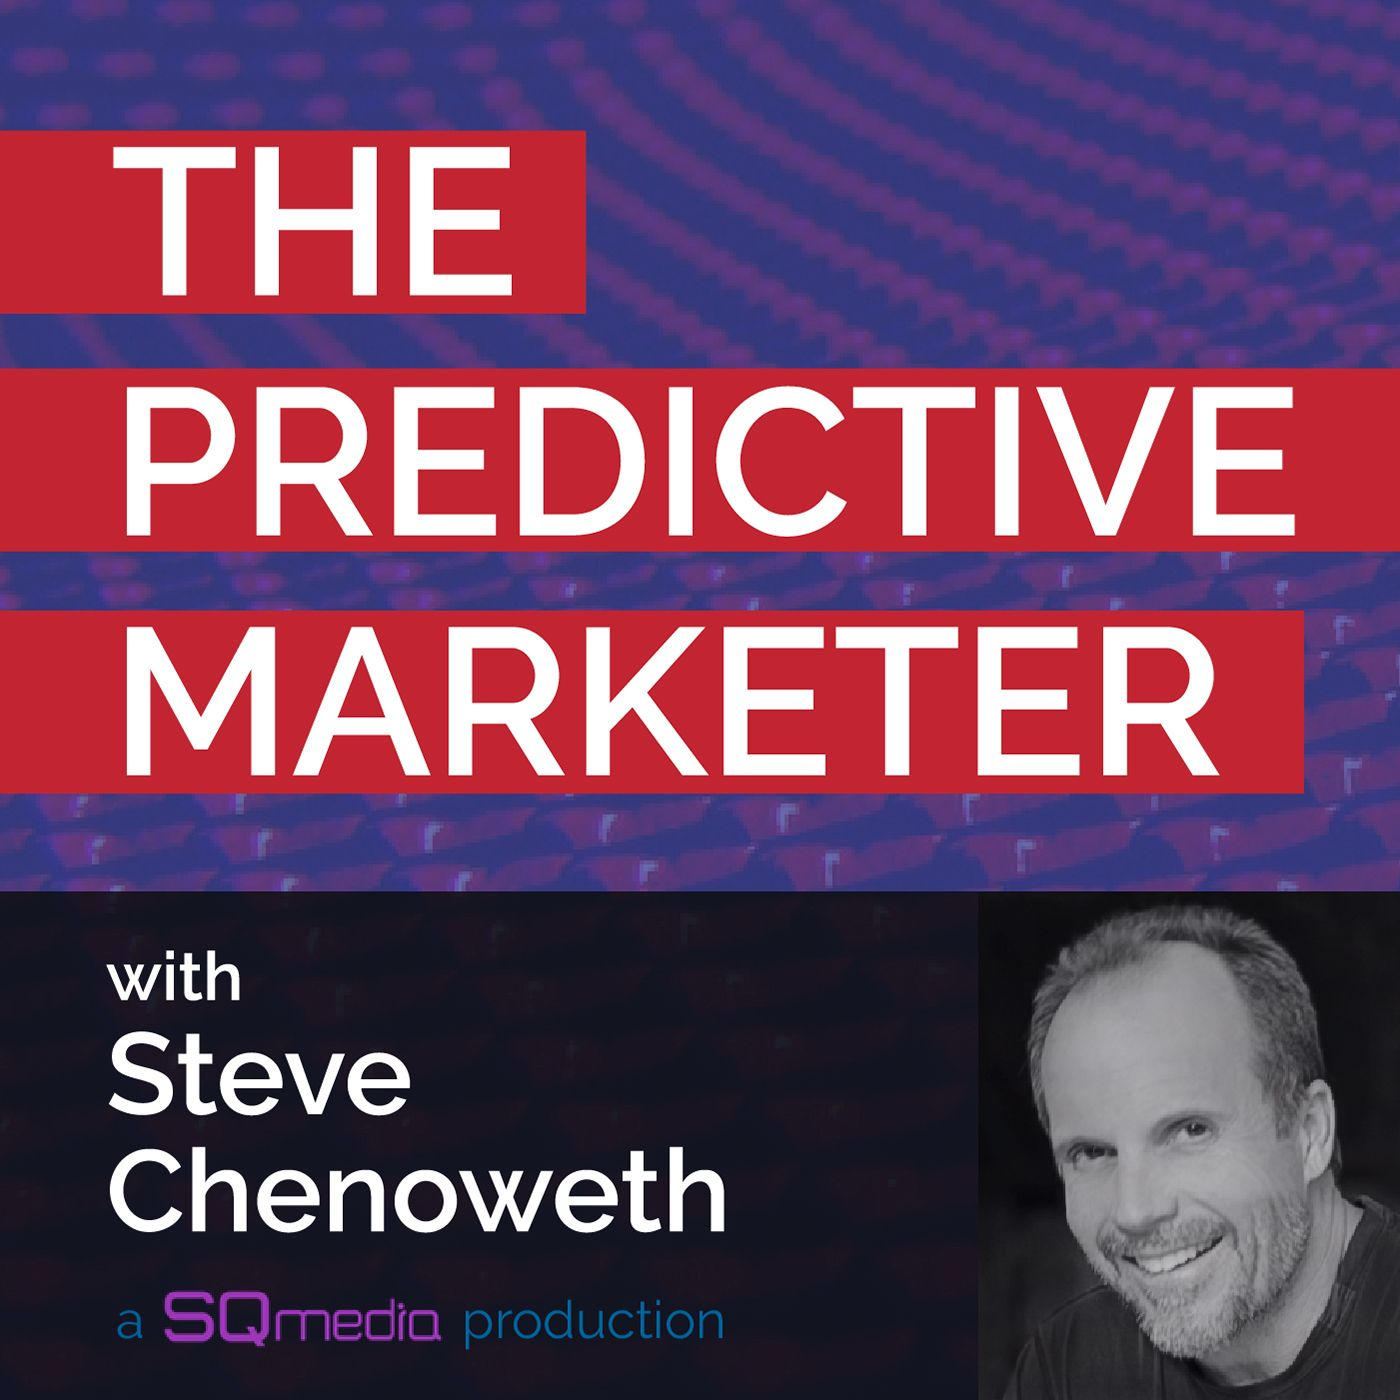 The Predictive Marketer